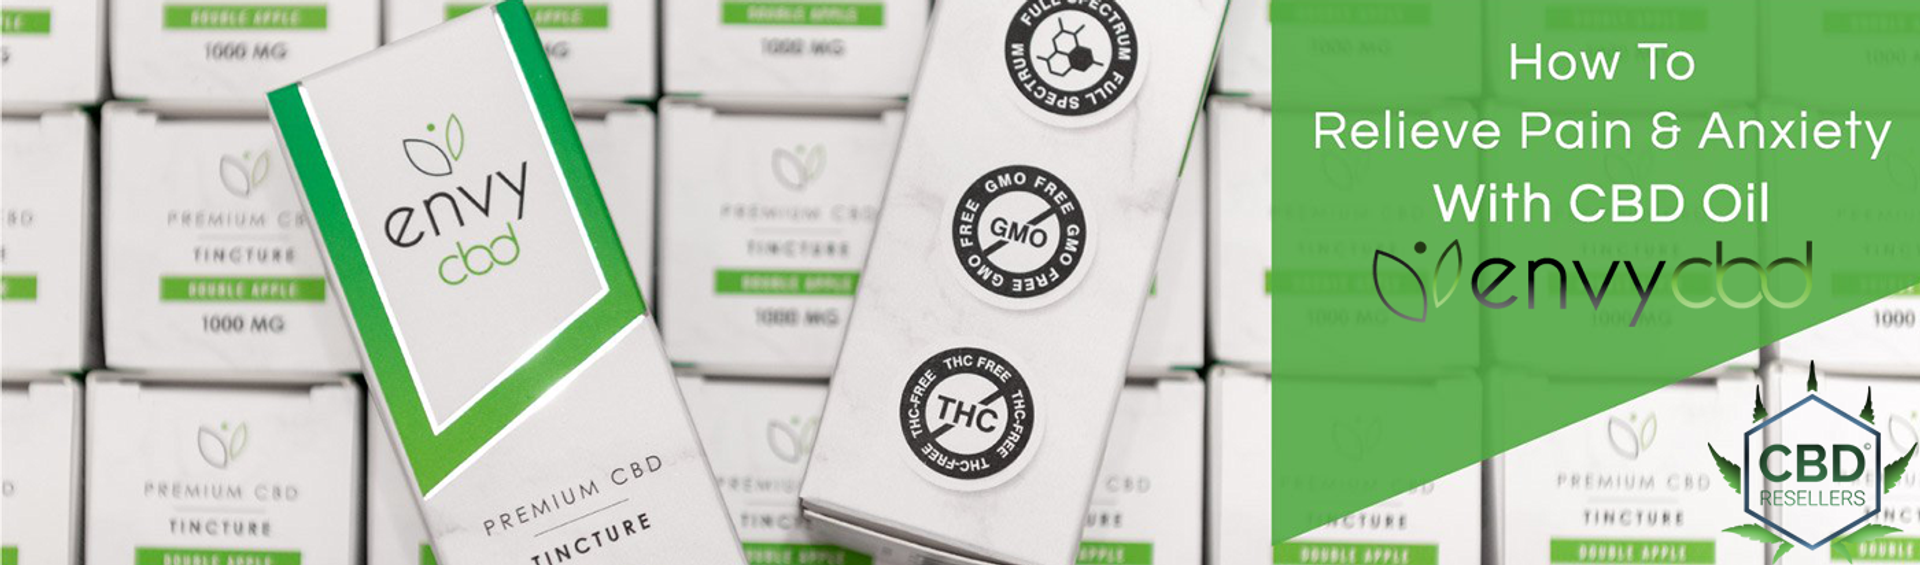 Envy CBD is a holistic wellness and lifestyle brand that seeks to re-imagine, redefine, and revolutionize holistic wellness with the introduction of hemp-derived, full-spectrum CBD. Envy offers Tinctures/Oils, Lotions, Face Creams, & Soft Chew Gummies